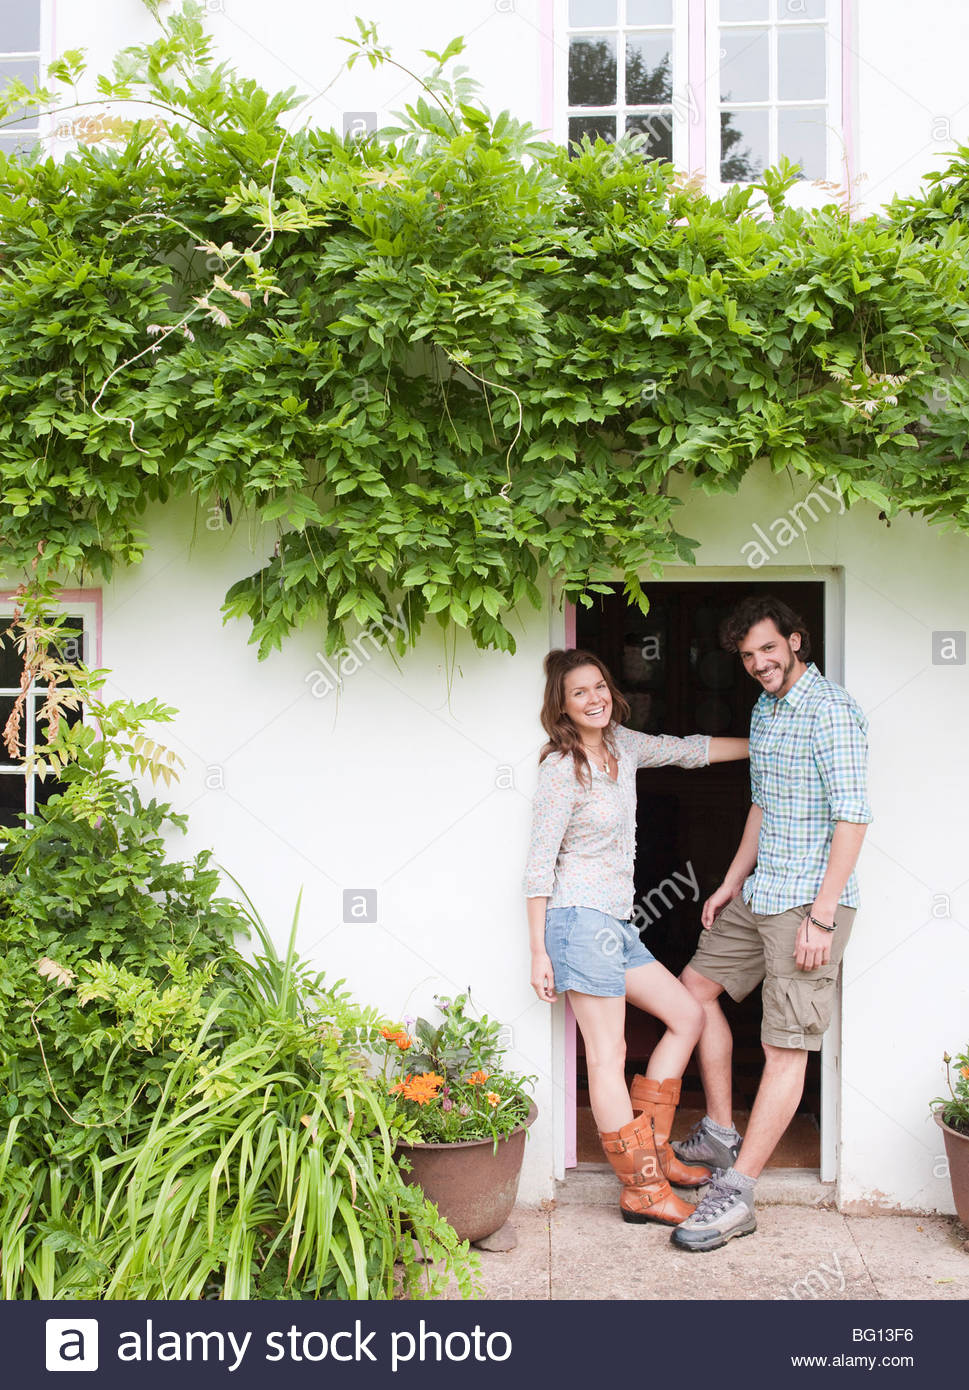 couple by front door of house - Stock Image